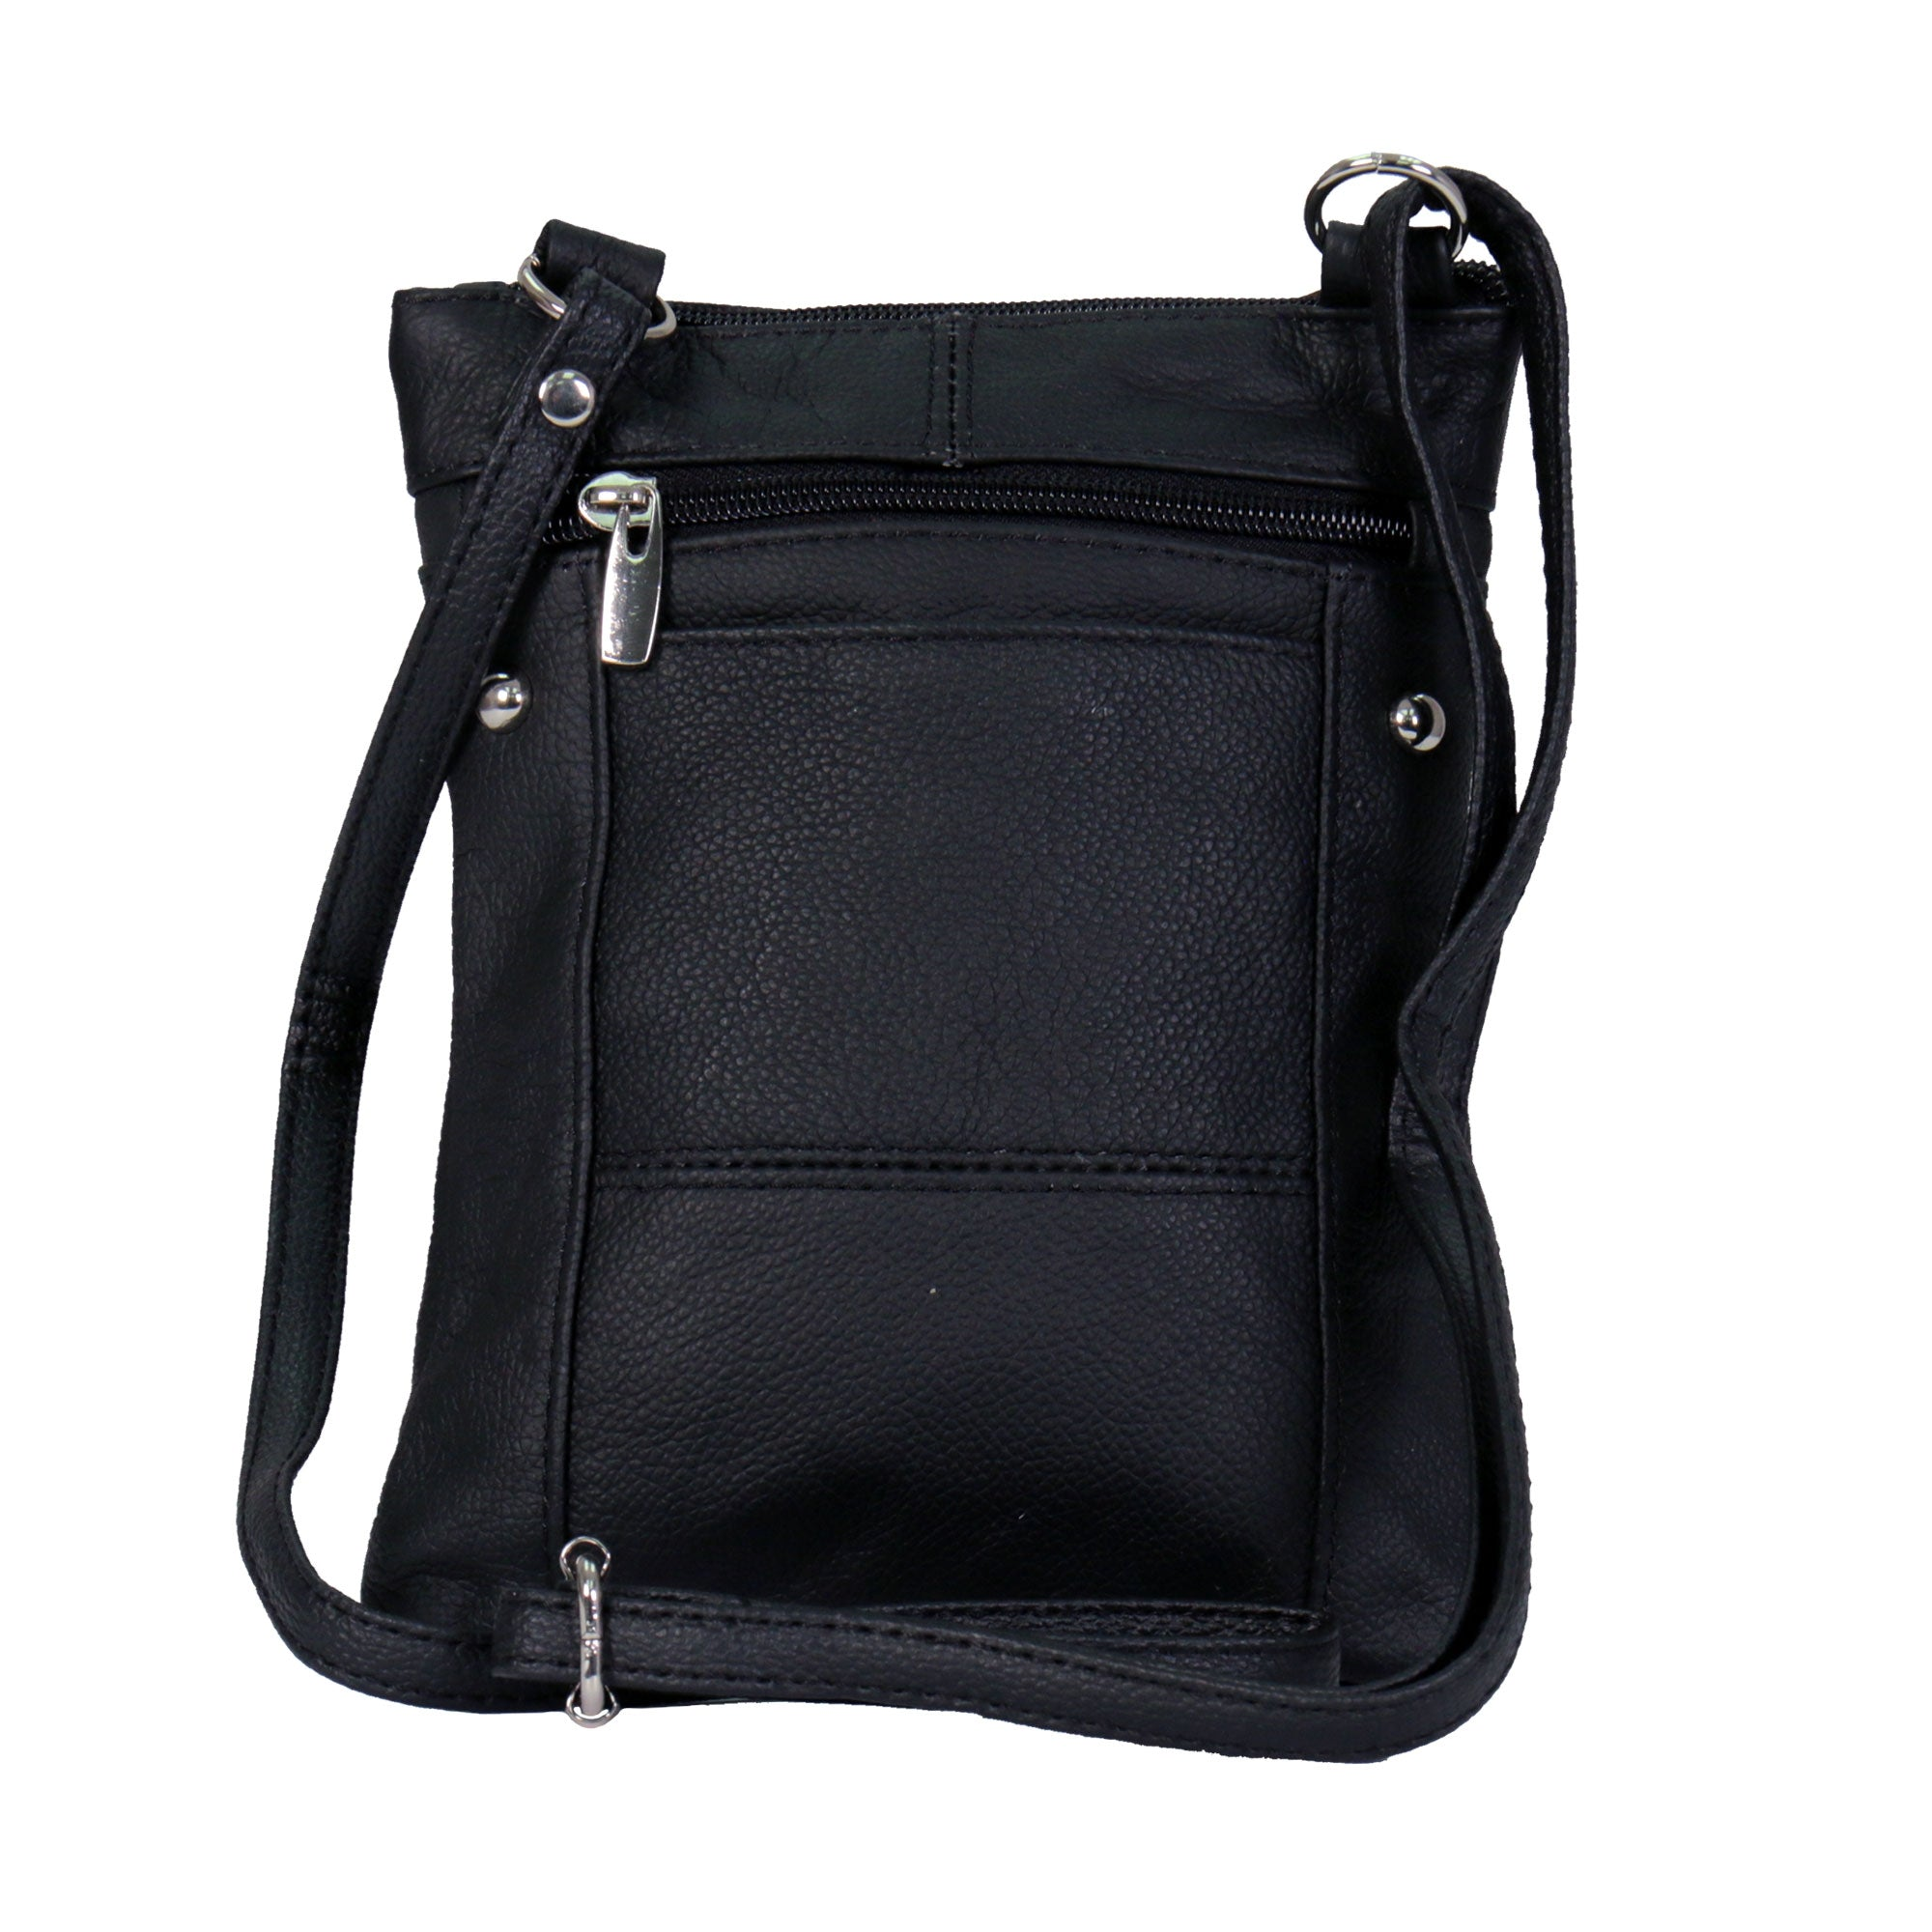 Hot Leathers 5 Pocket ID Holder Purse